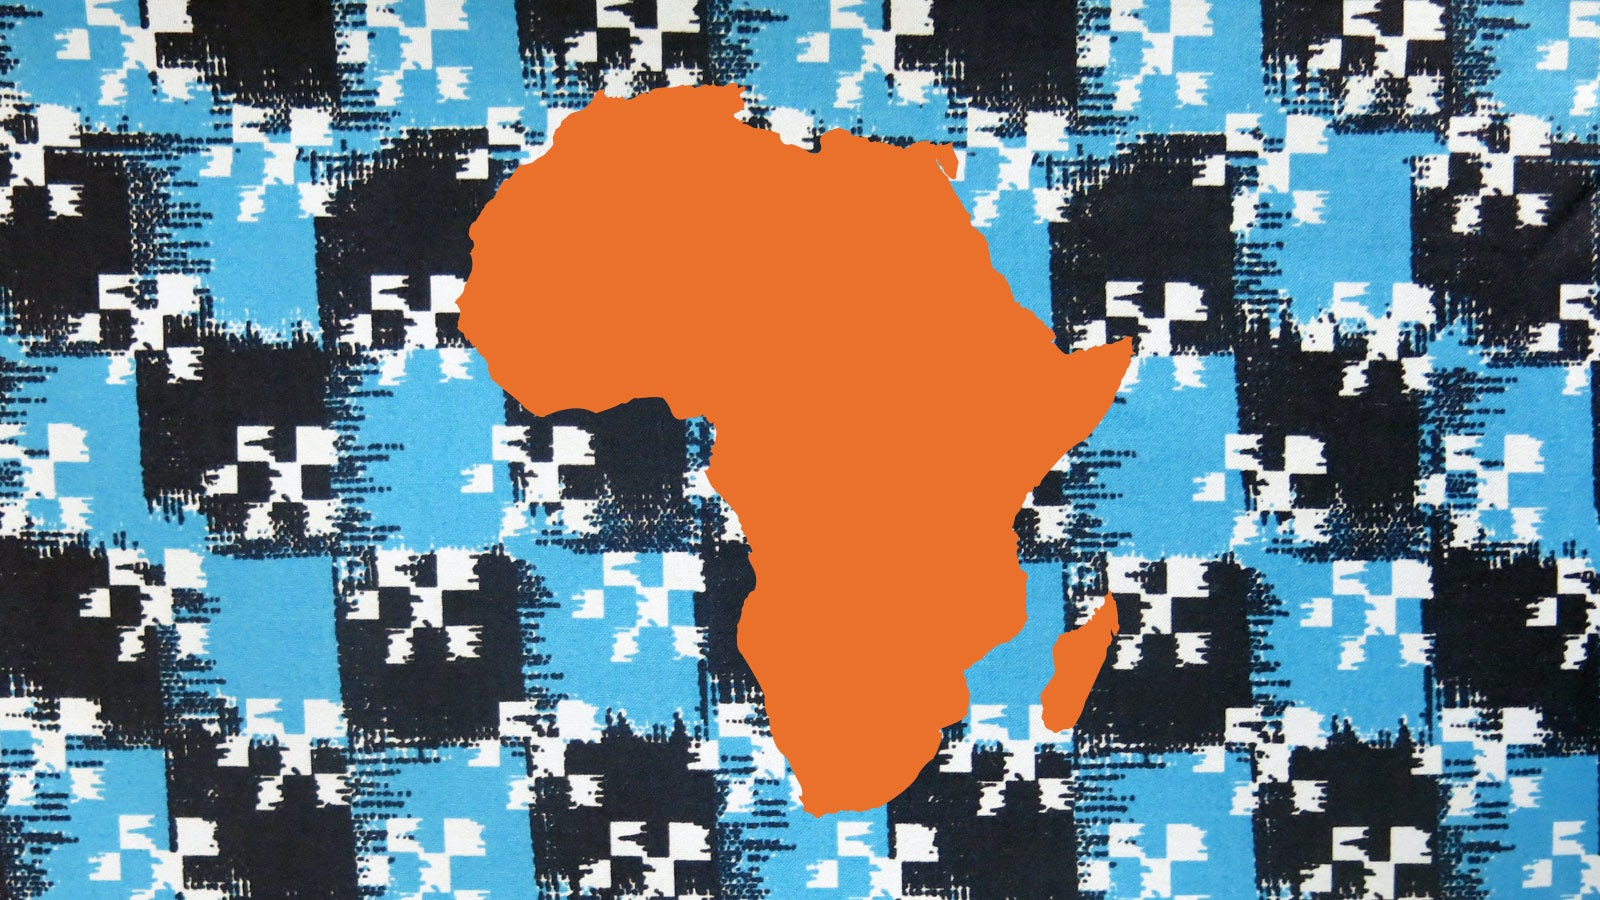 Putting Africa on the Fashion Map